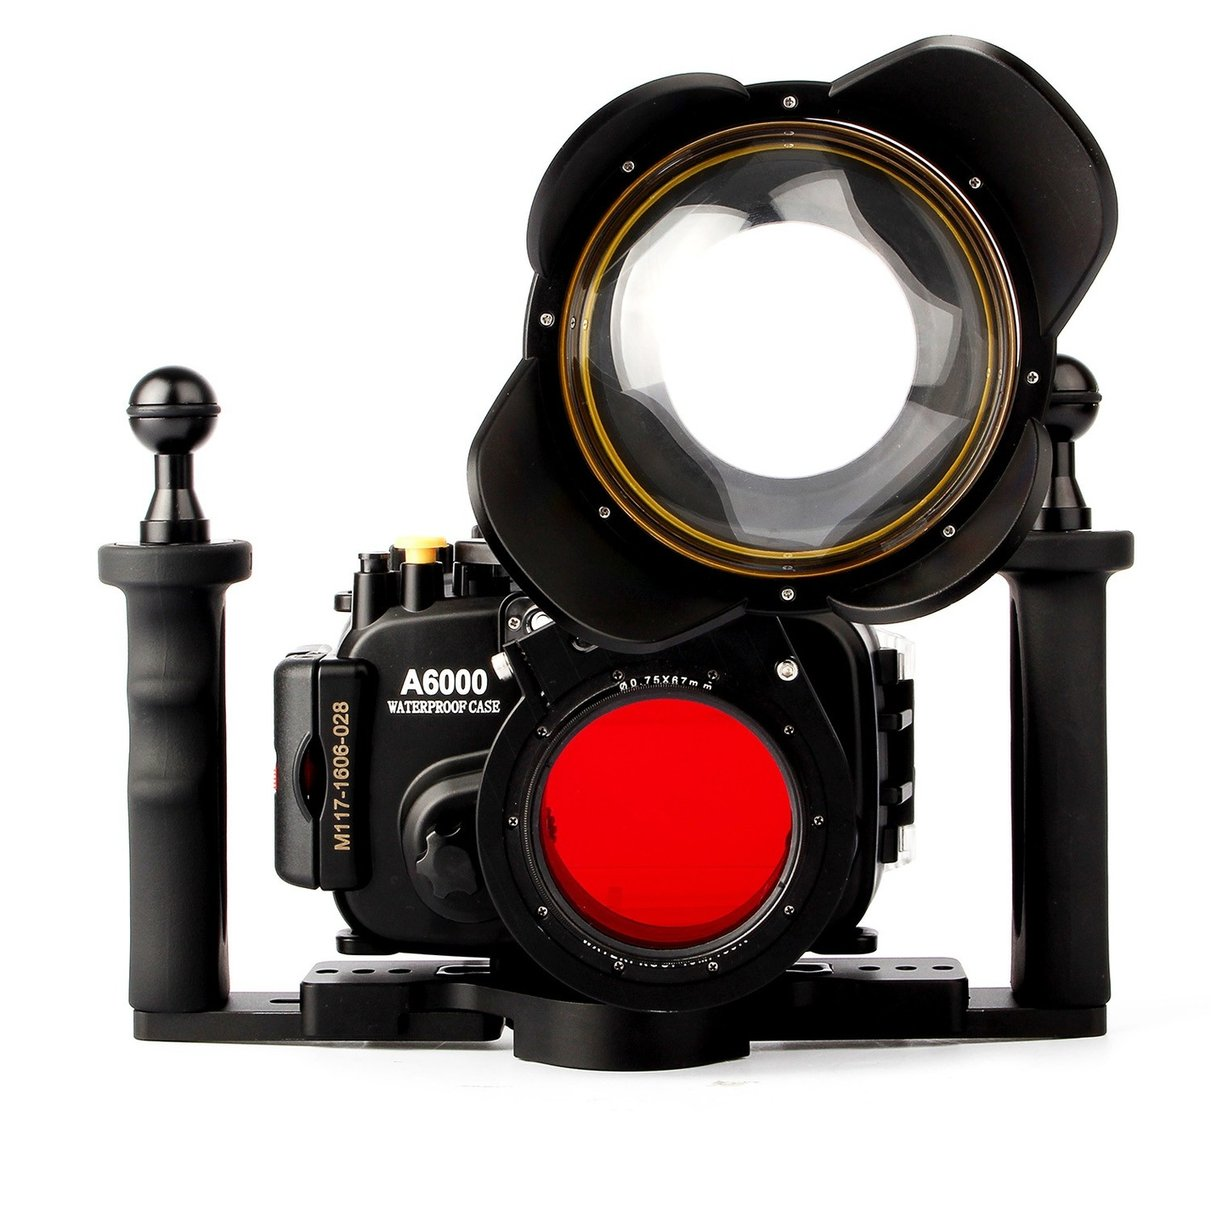 Waterproof Underwater Camera Housing Case Bag for Sony A6000 w/ 16-50mm Lens + Fisheye Dome Port + Two-hands Handle + Red Filte